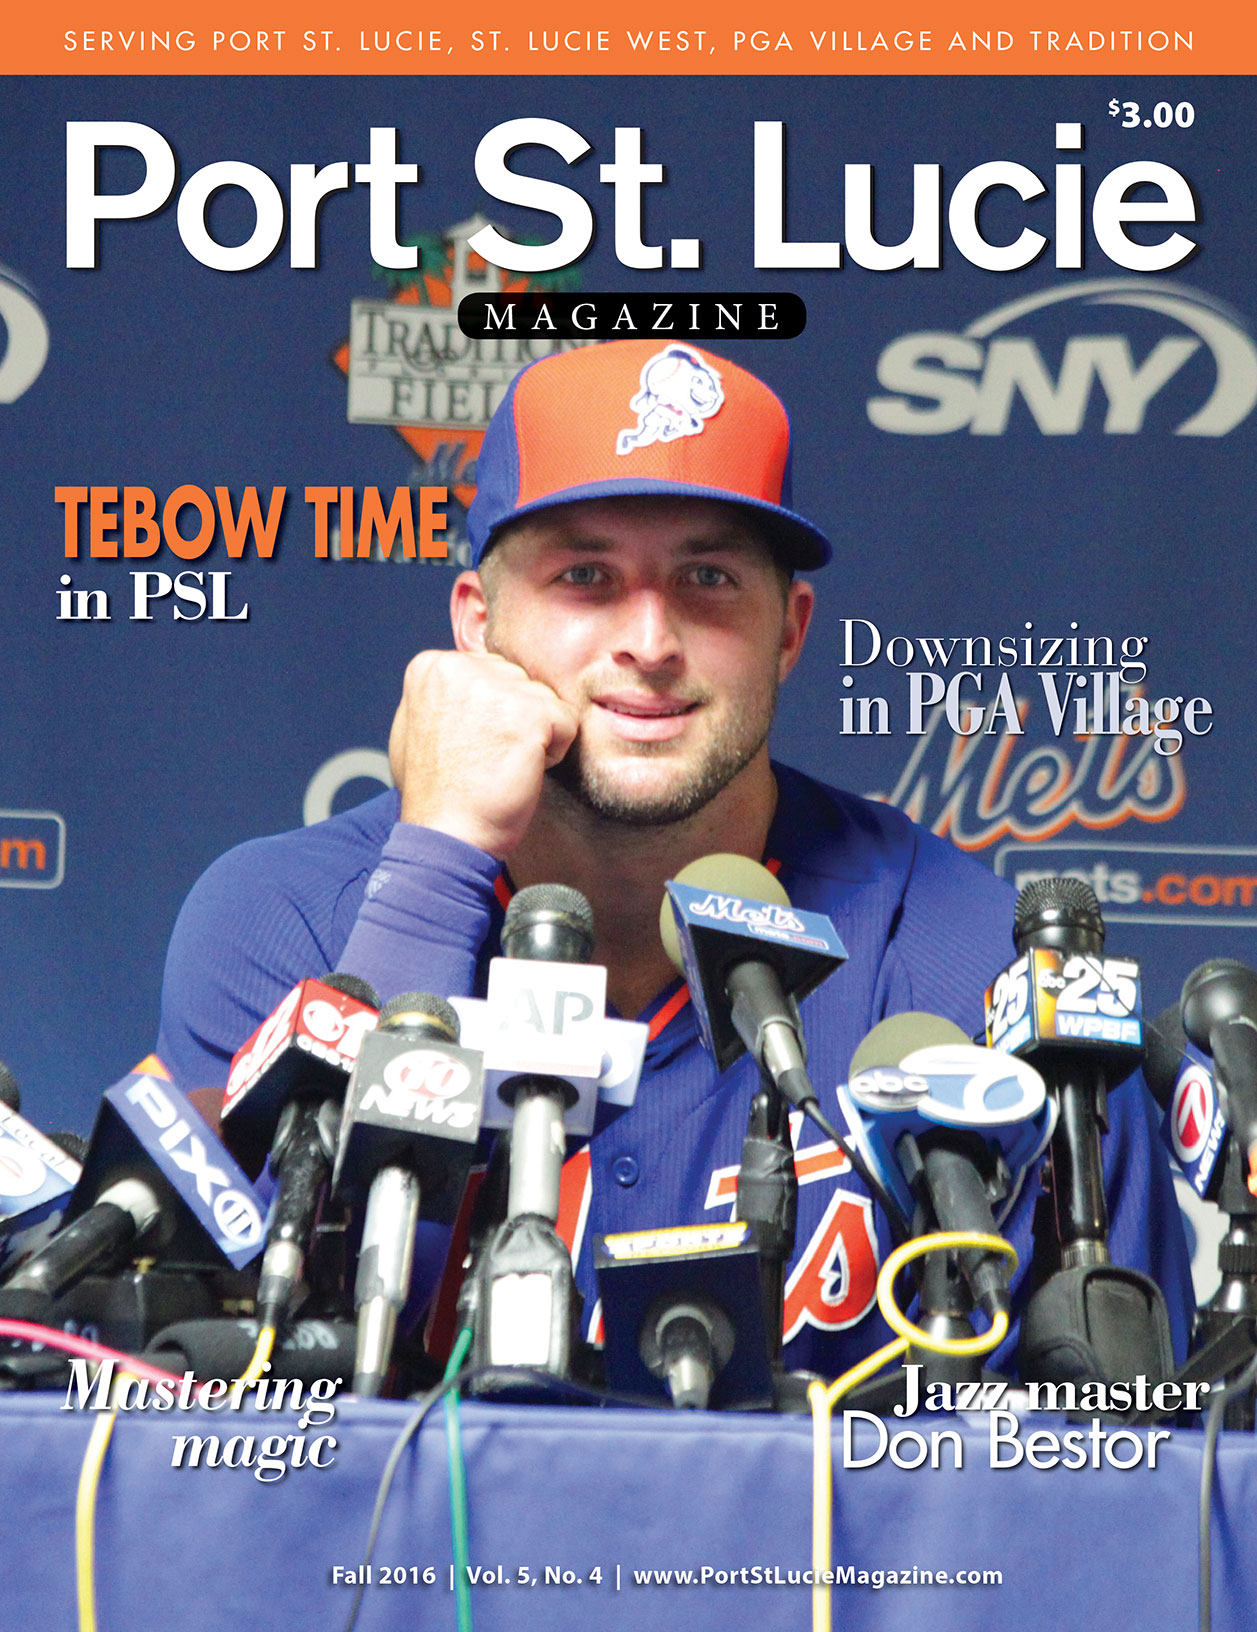 Port St. Lucie Magazine - Vol. 5, No. 4